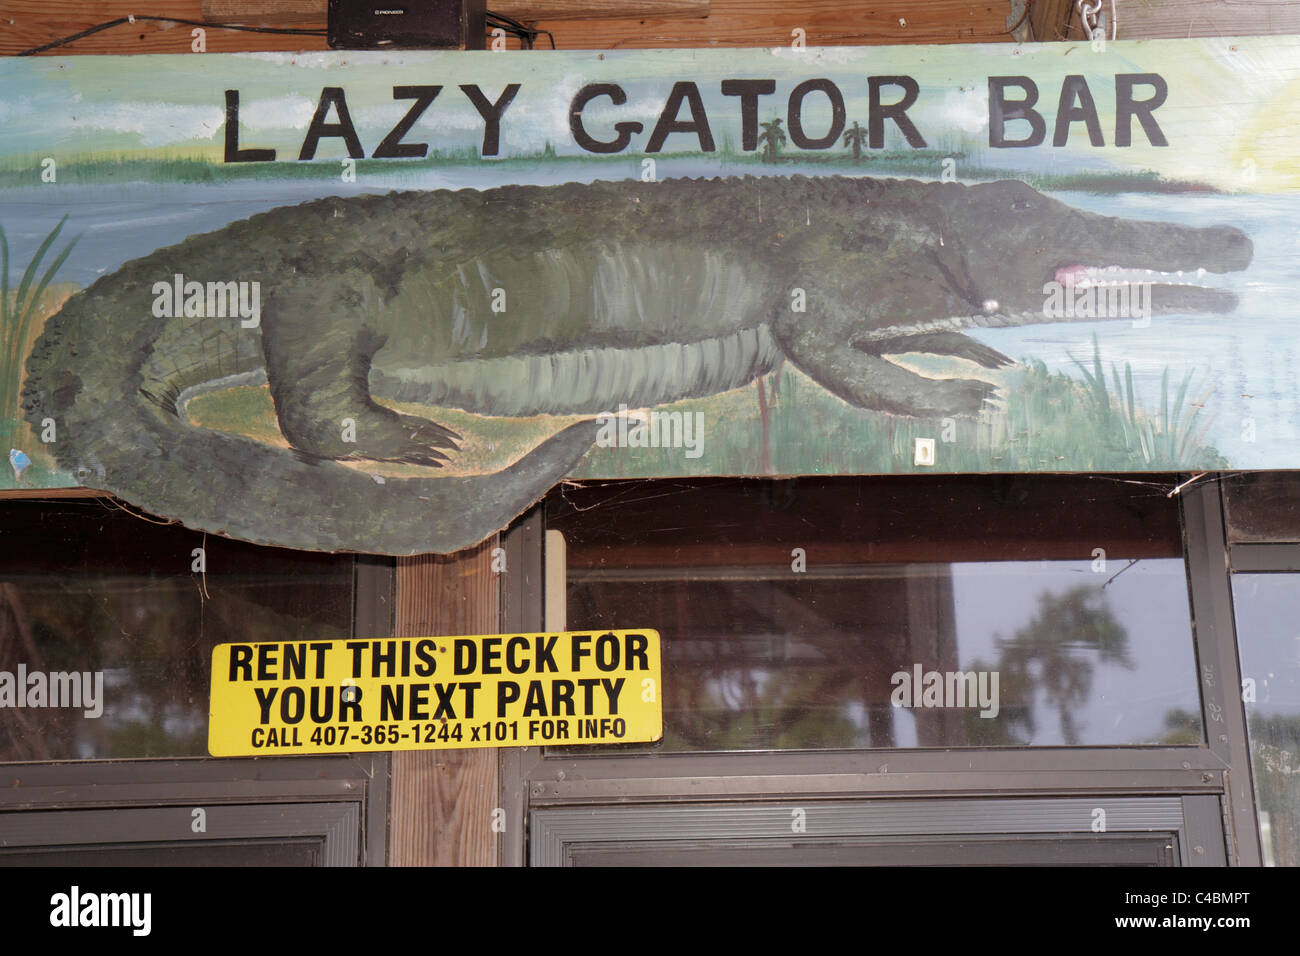 orlando florida oviedo lake jesup black hammock adventures lazy gator bar sign art alligator orlando florida oviedo lake jesup black hammock adventures lazy      rh   alamy